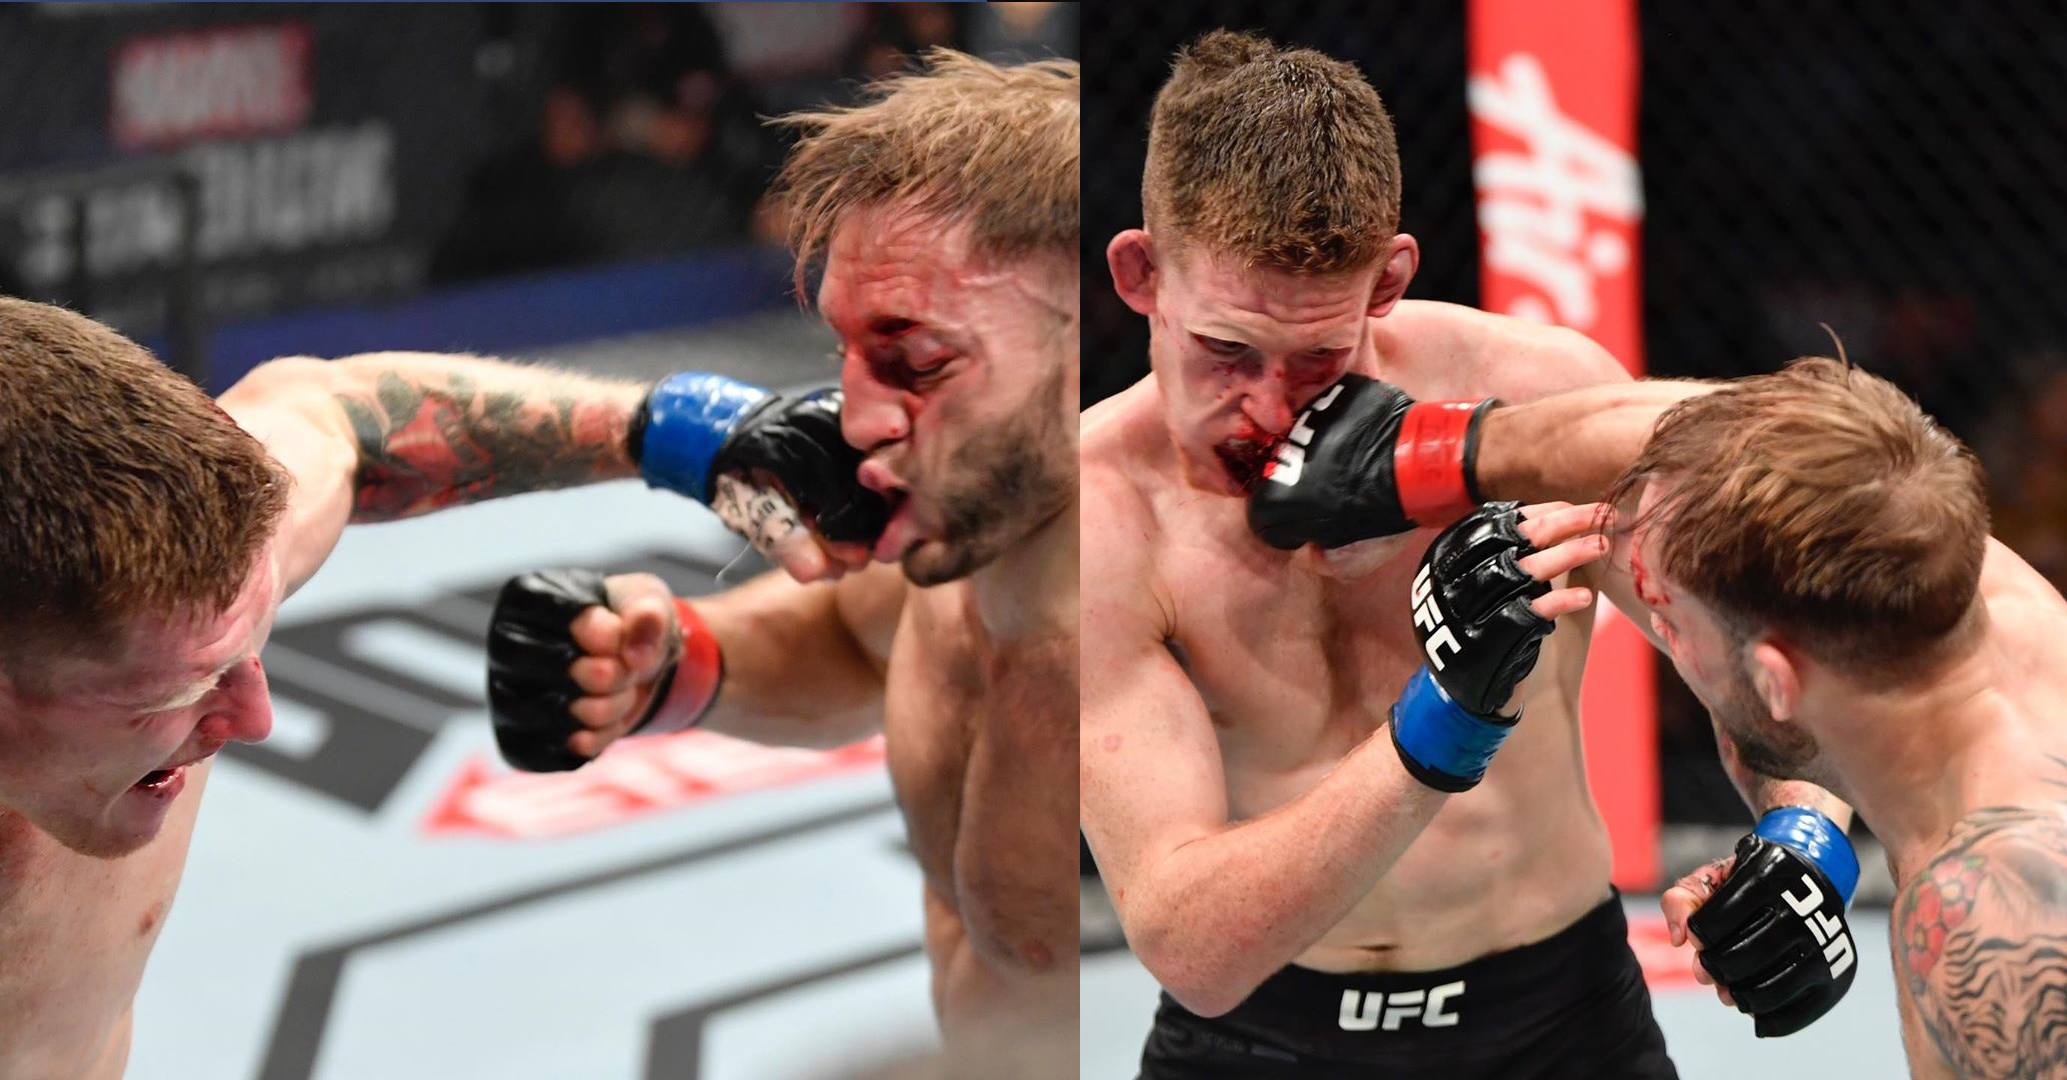 The Round Of The Year Was At The UFC, With These Two Fighters Who Were Both Almost KO'd